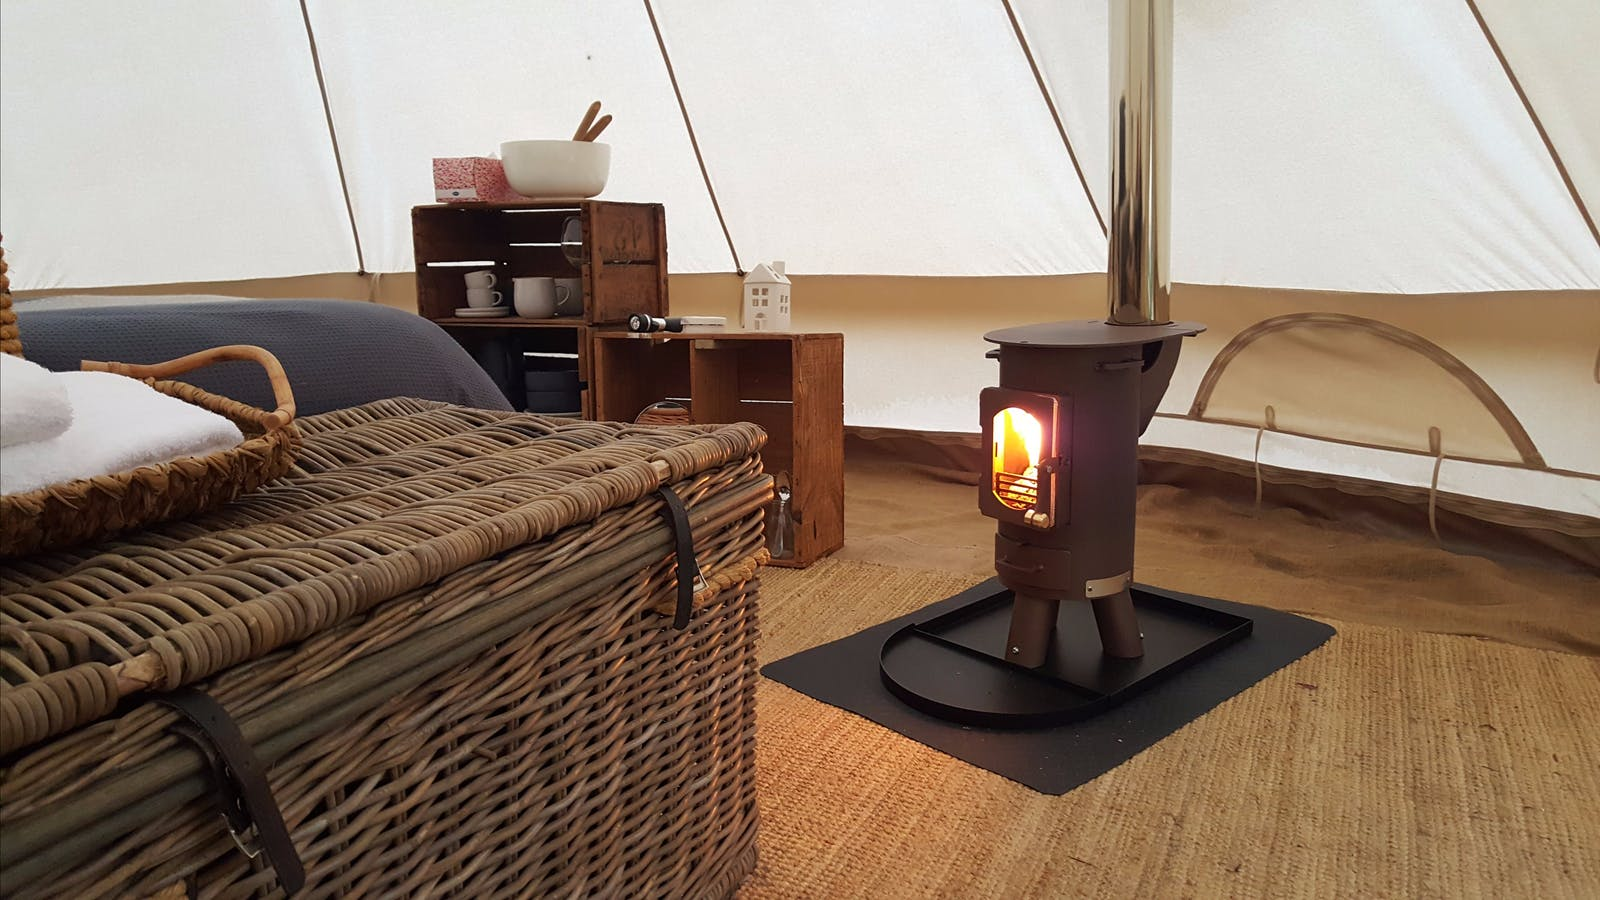 Cosy Tents Camp Stove